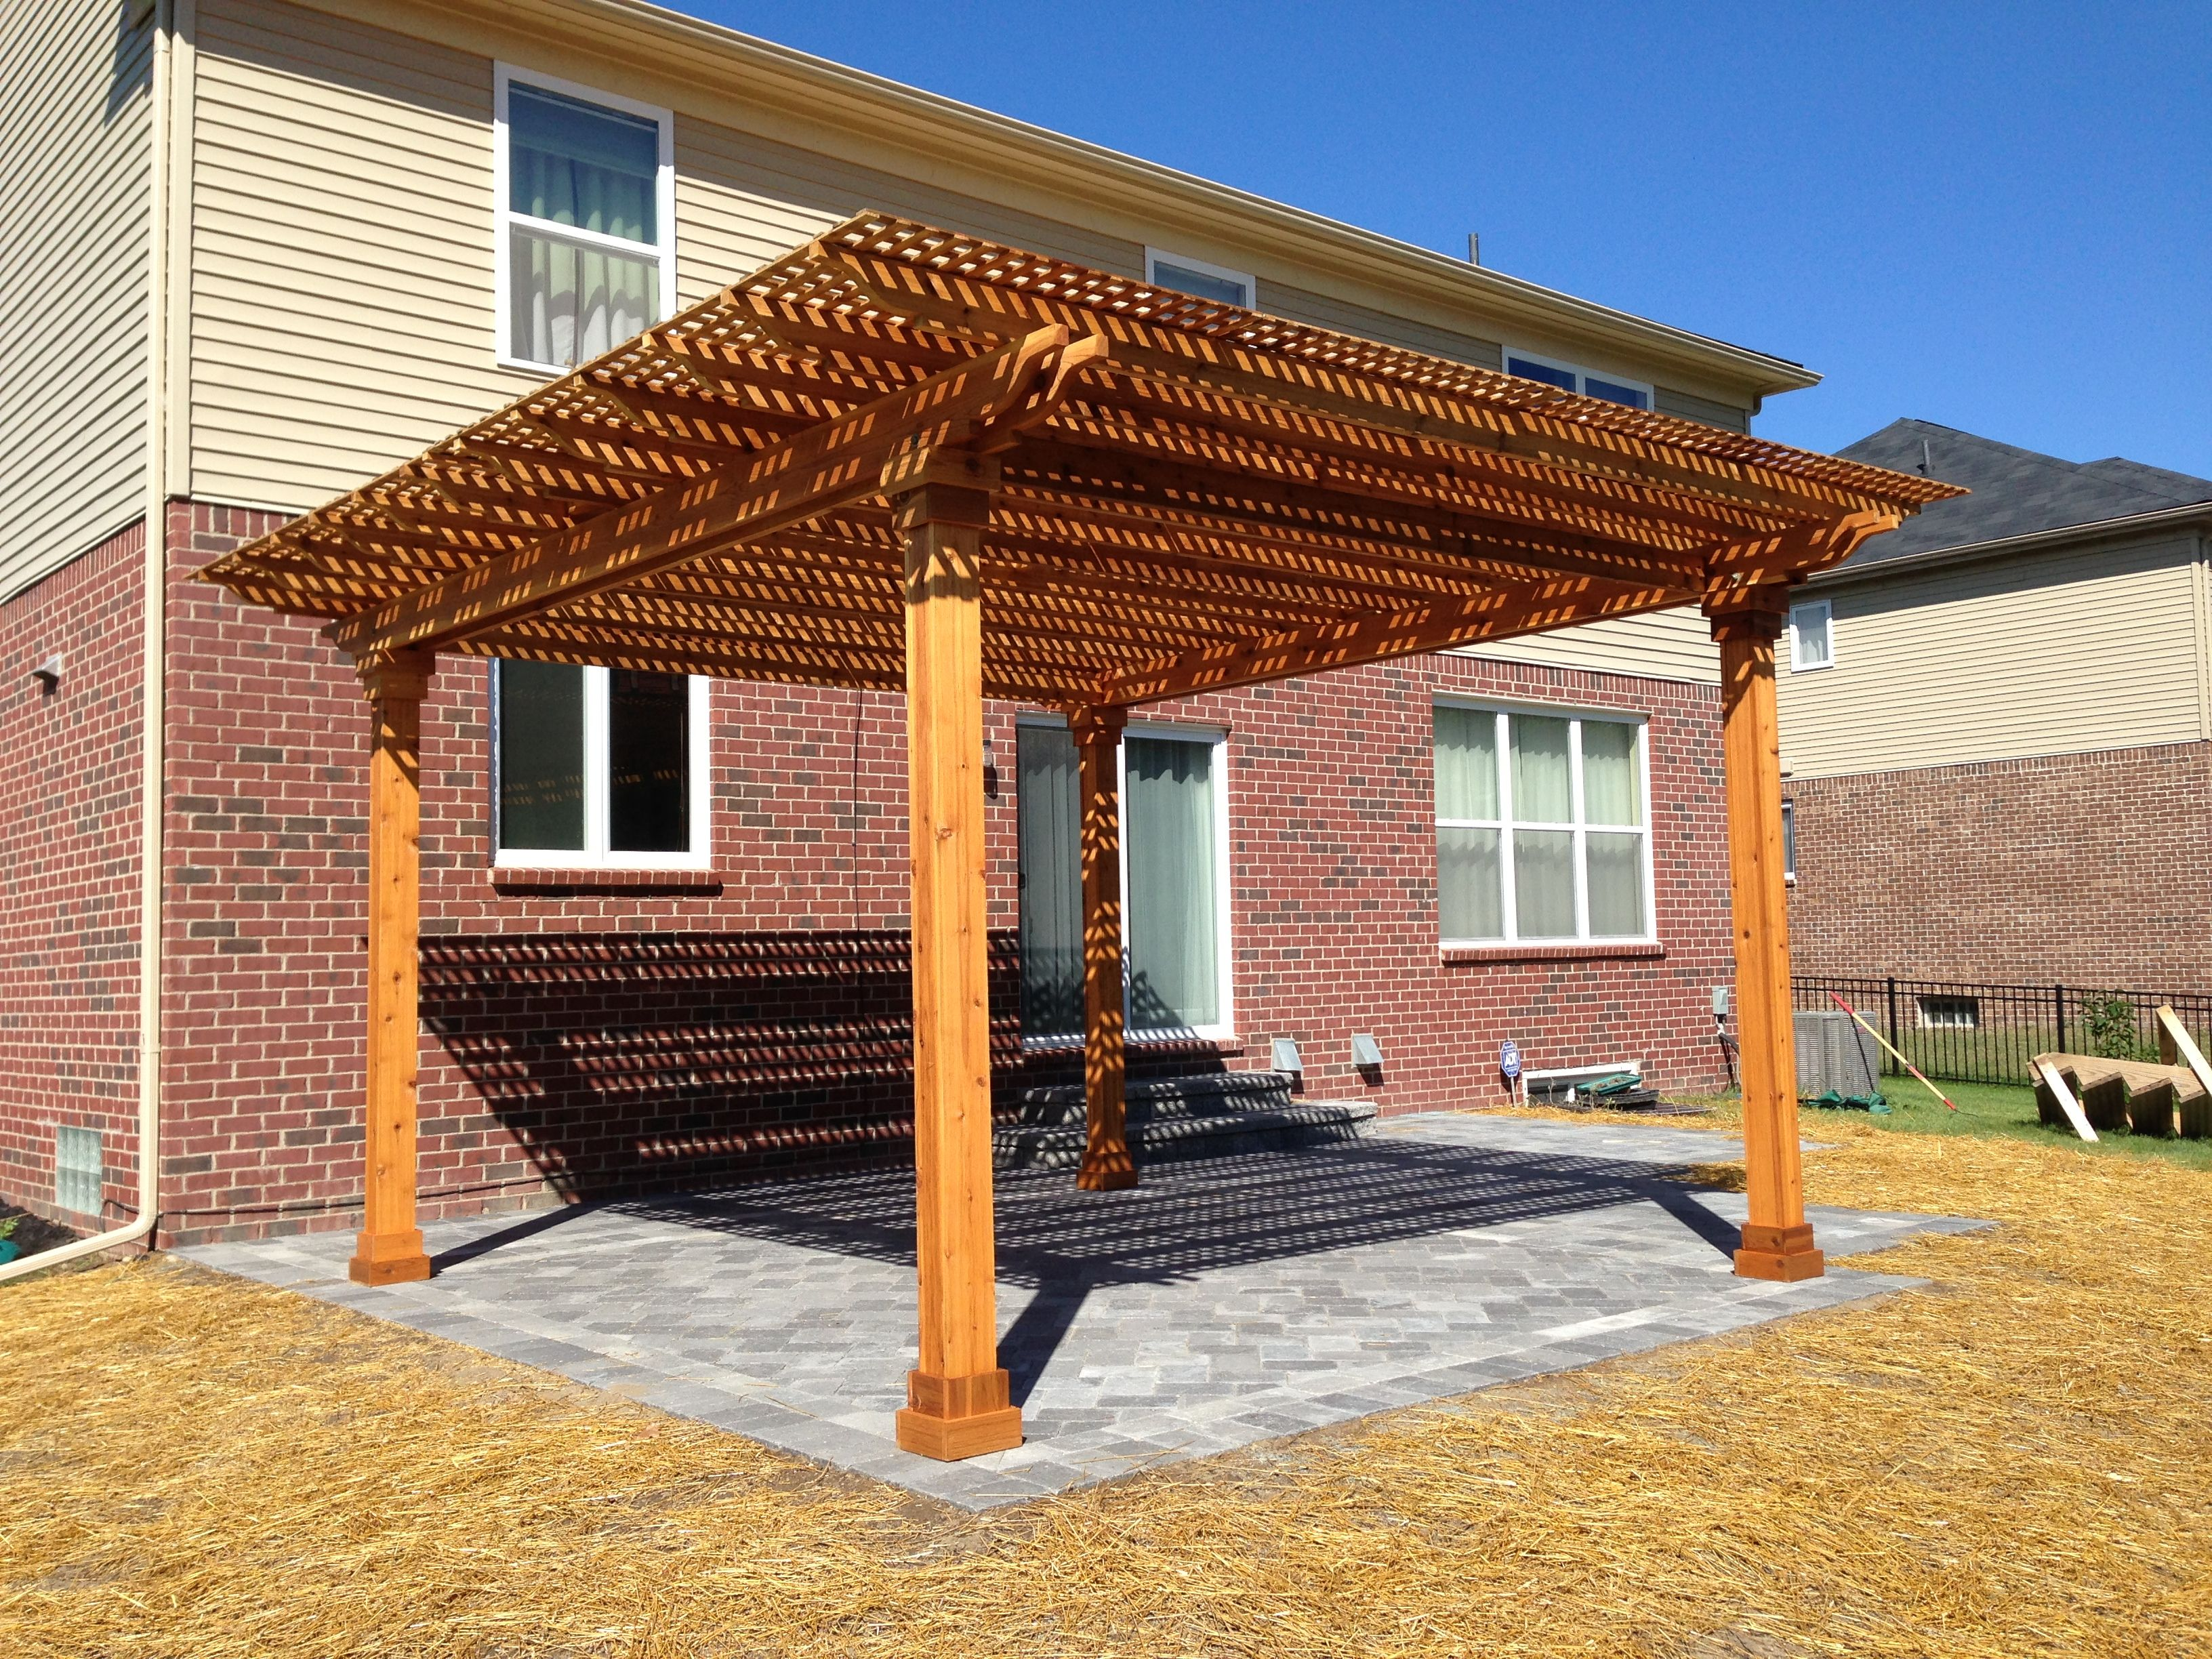 12x12 Cedar Pergola With Lattice Top Over A Unilock Patio